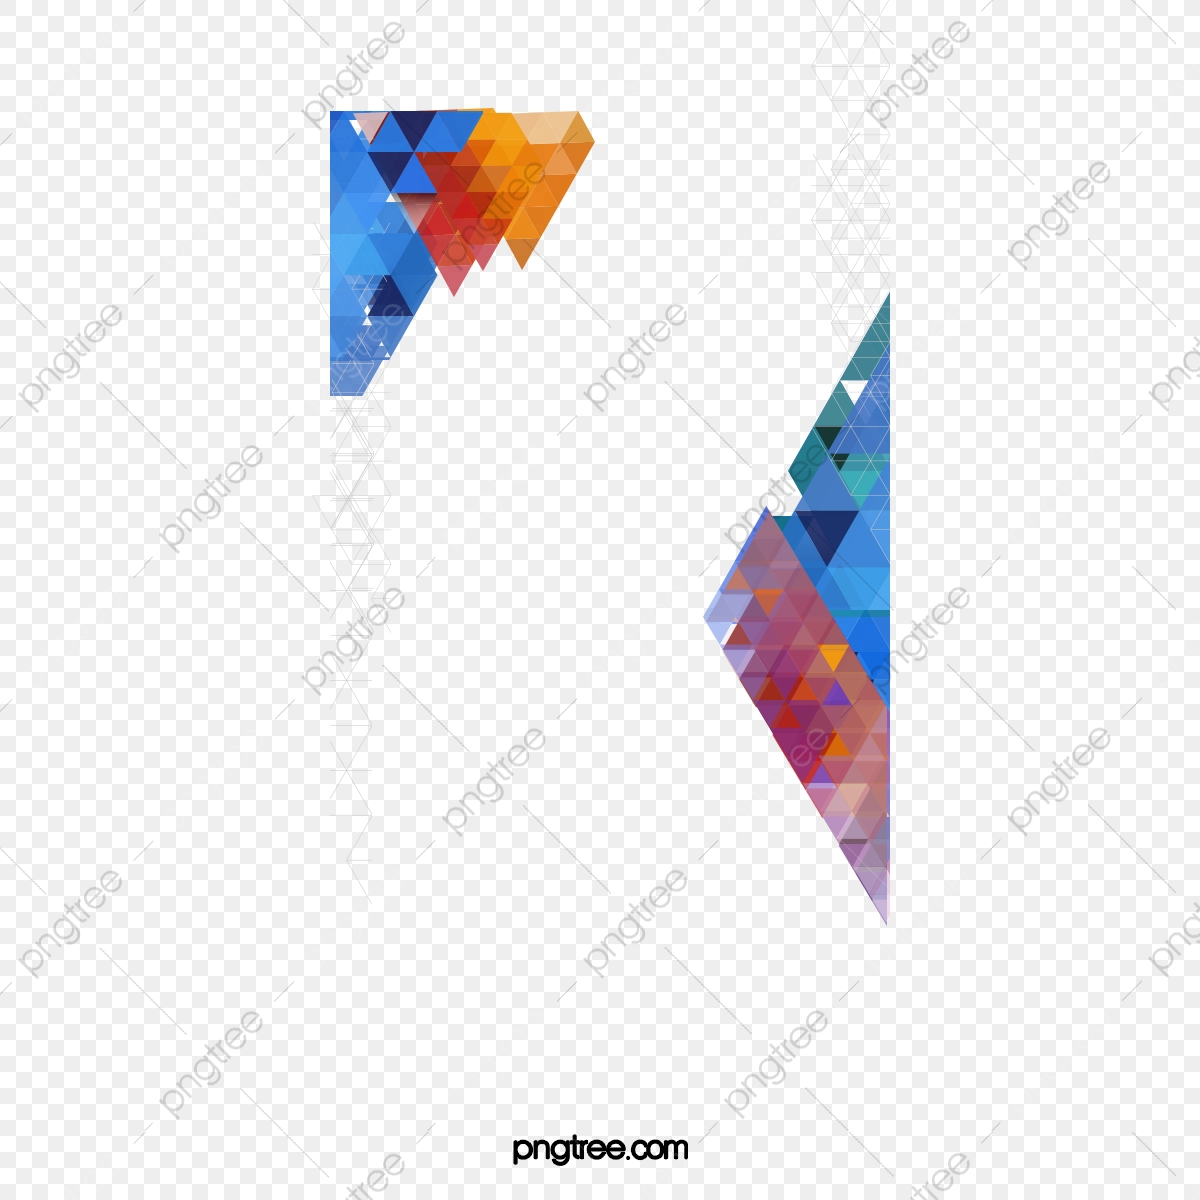 Colorful Polygonal Geometric Patterns, Colorful Vector, Polygonal